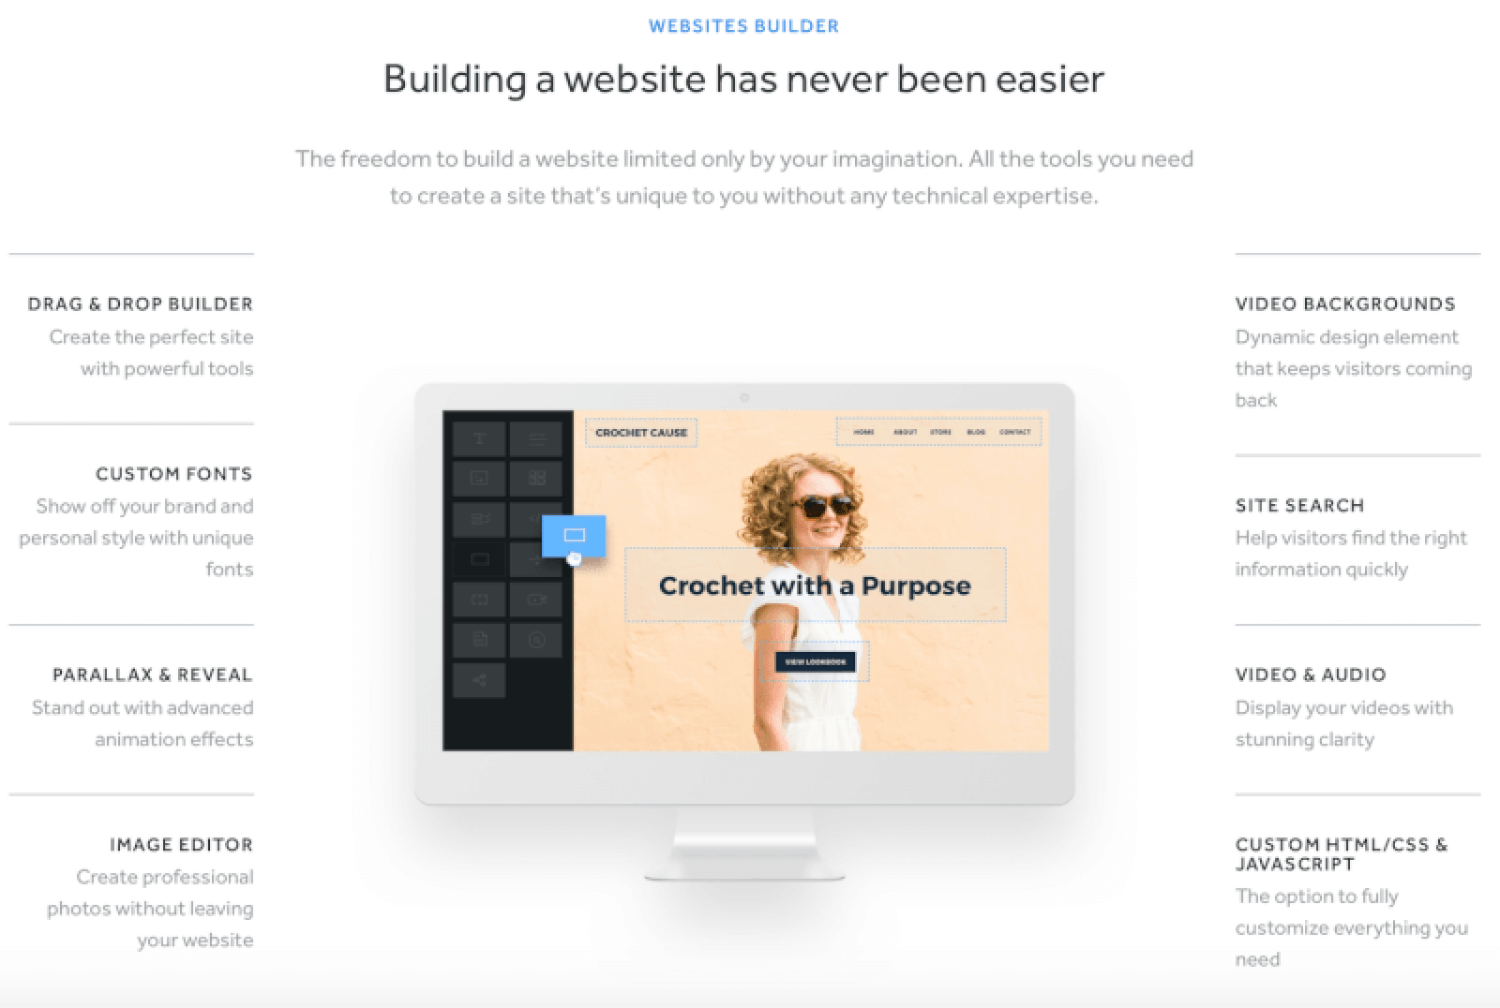 Weebly site builder features